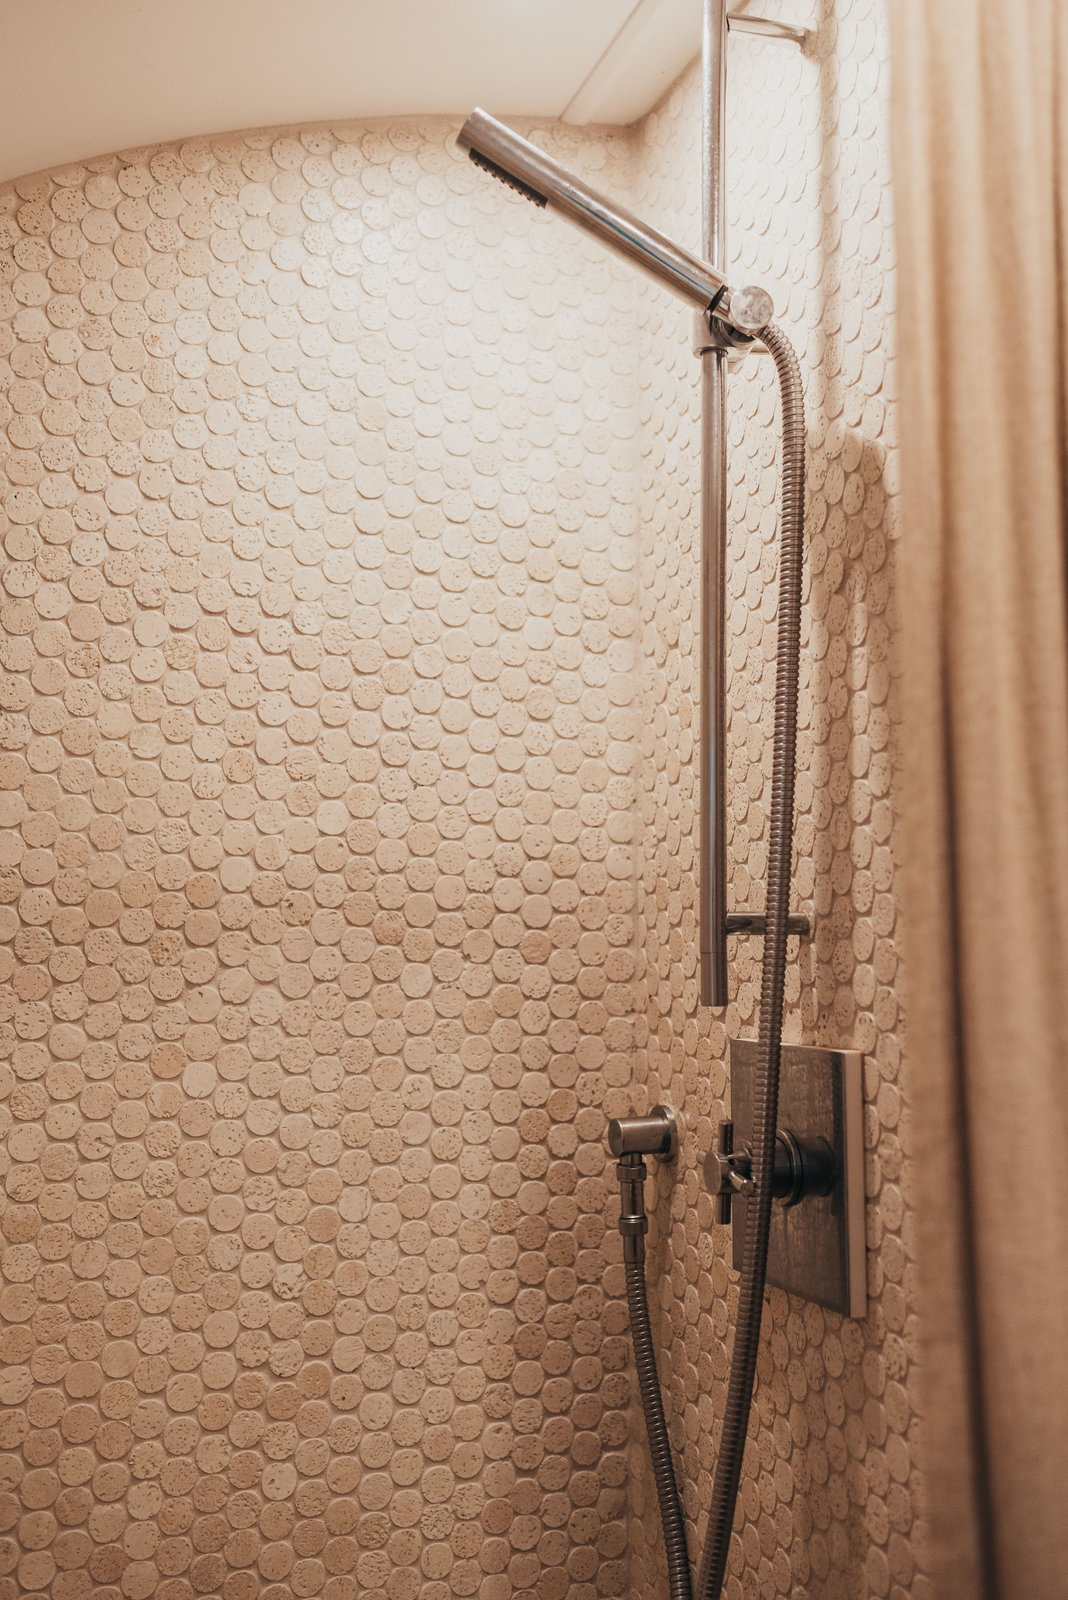 1973 Airstream Remodel shower